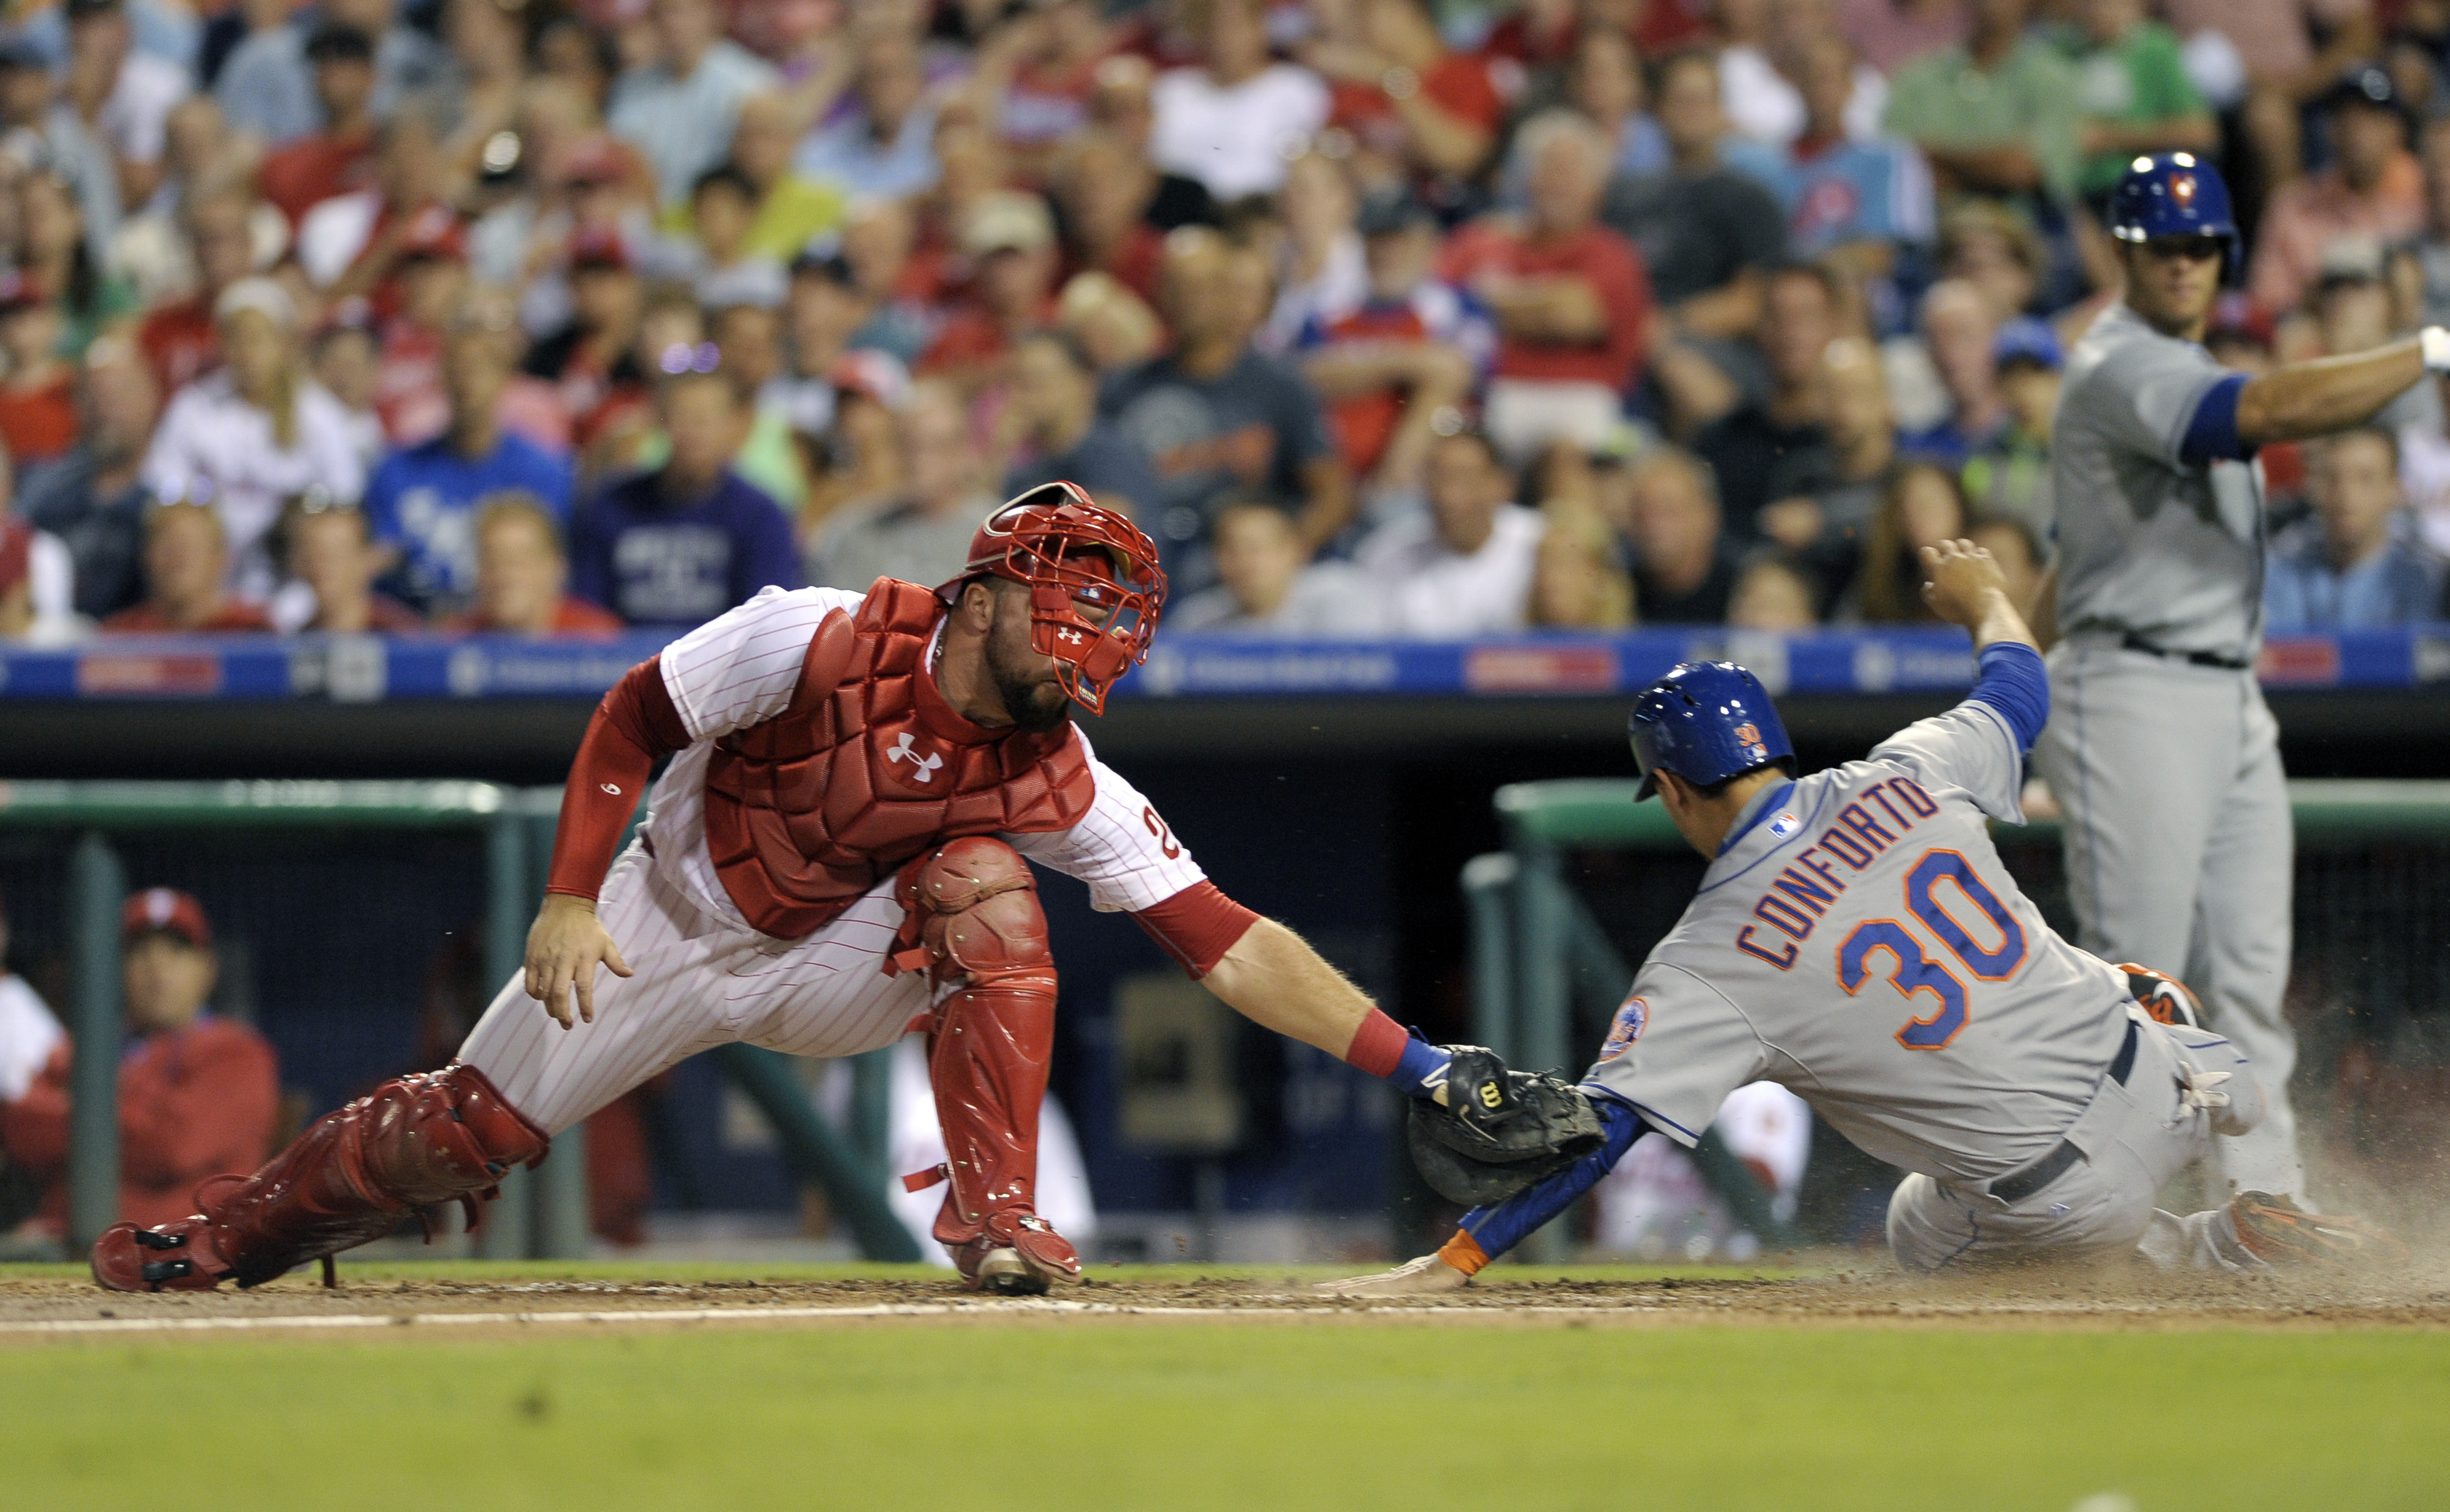 New York Mets' Michael Conforto (30) slides past Philadelphia Phillies catcher Cameron Rupp, left, and score on a Juan Uribe single in the sixth inning of a baseball game, Wednesday, Aug. 26, 2015, in Philadelphia. (AP Photo/Michael Perez)